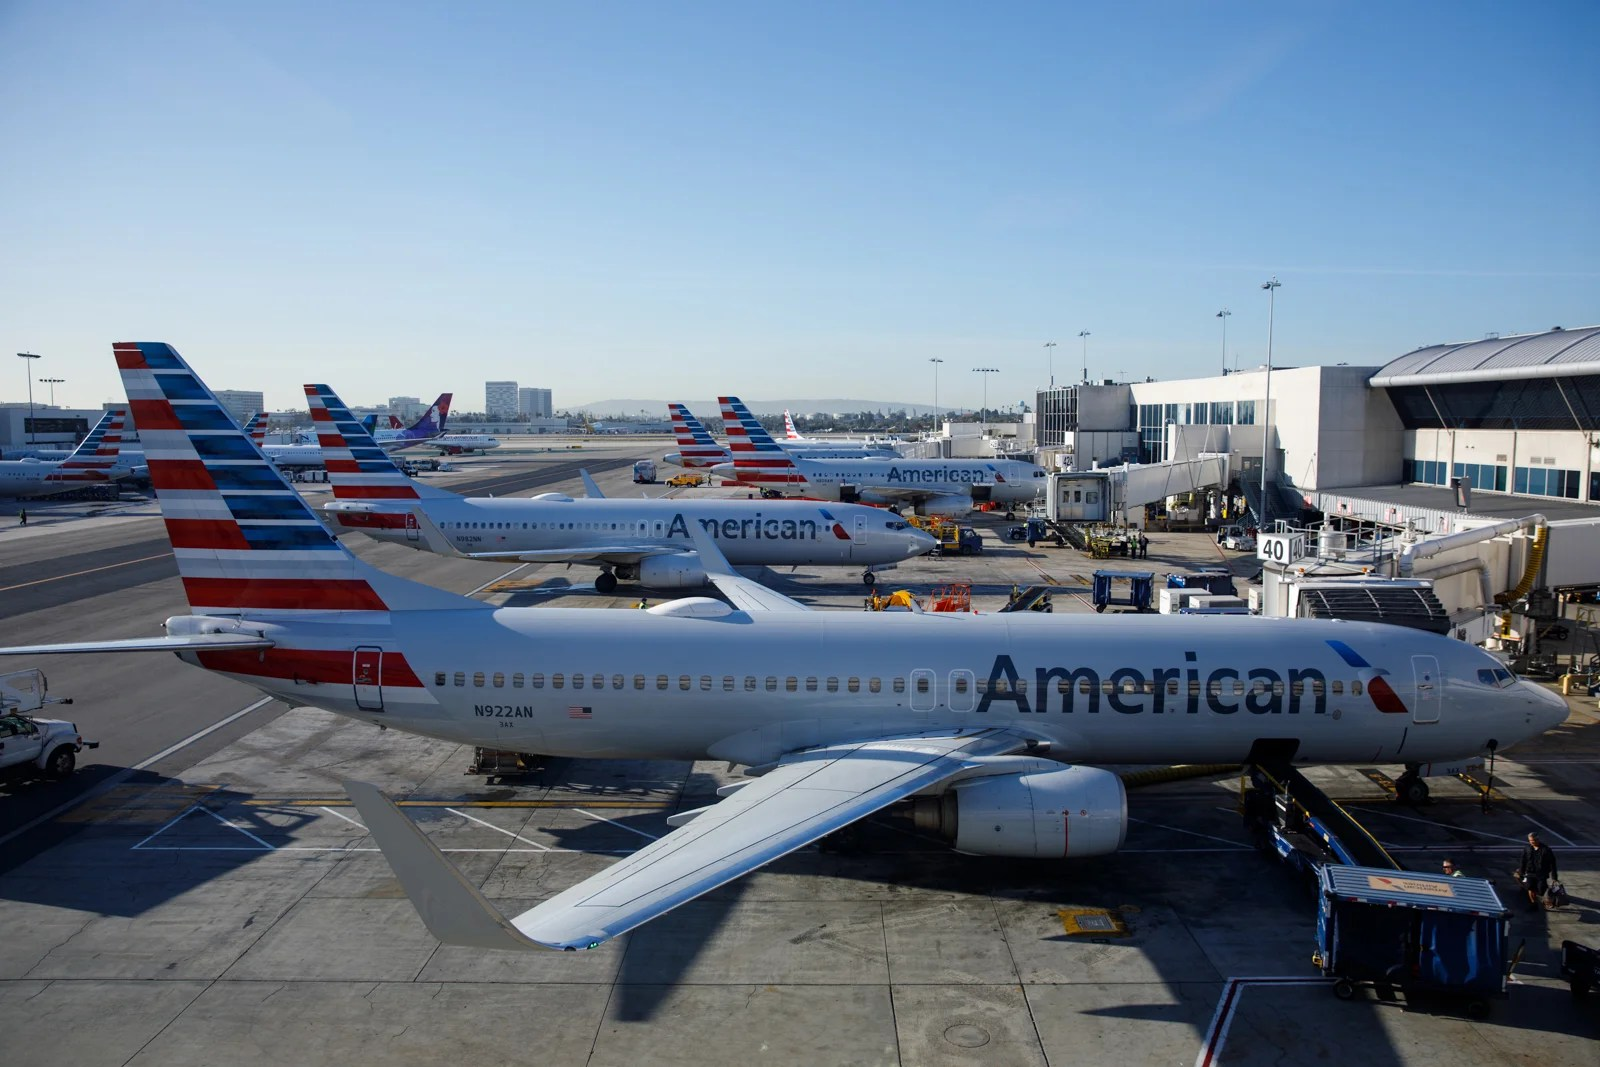 American Airlines planes at LAX. (Photo by Patrick T. Fallon/The Points Guy)